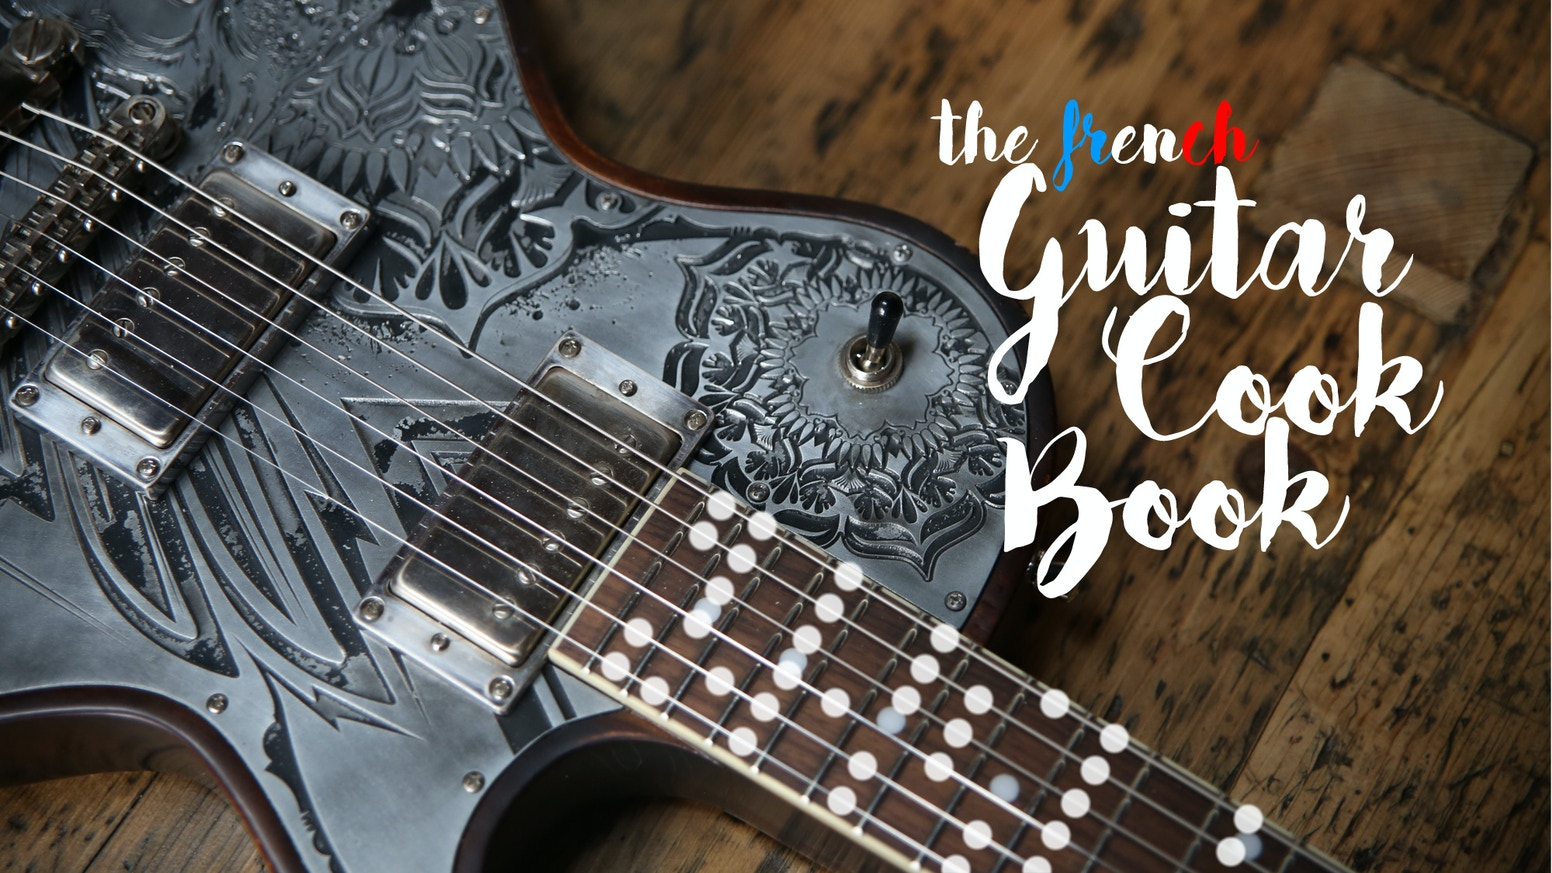 The French Guitar Cook Book A Modern Guitar Cheatsheet By Romain